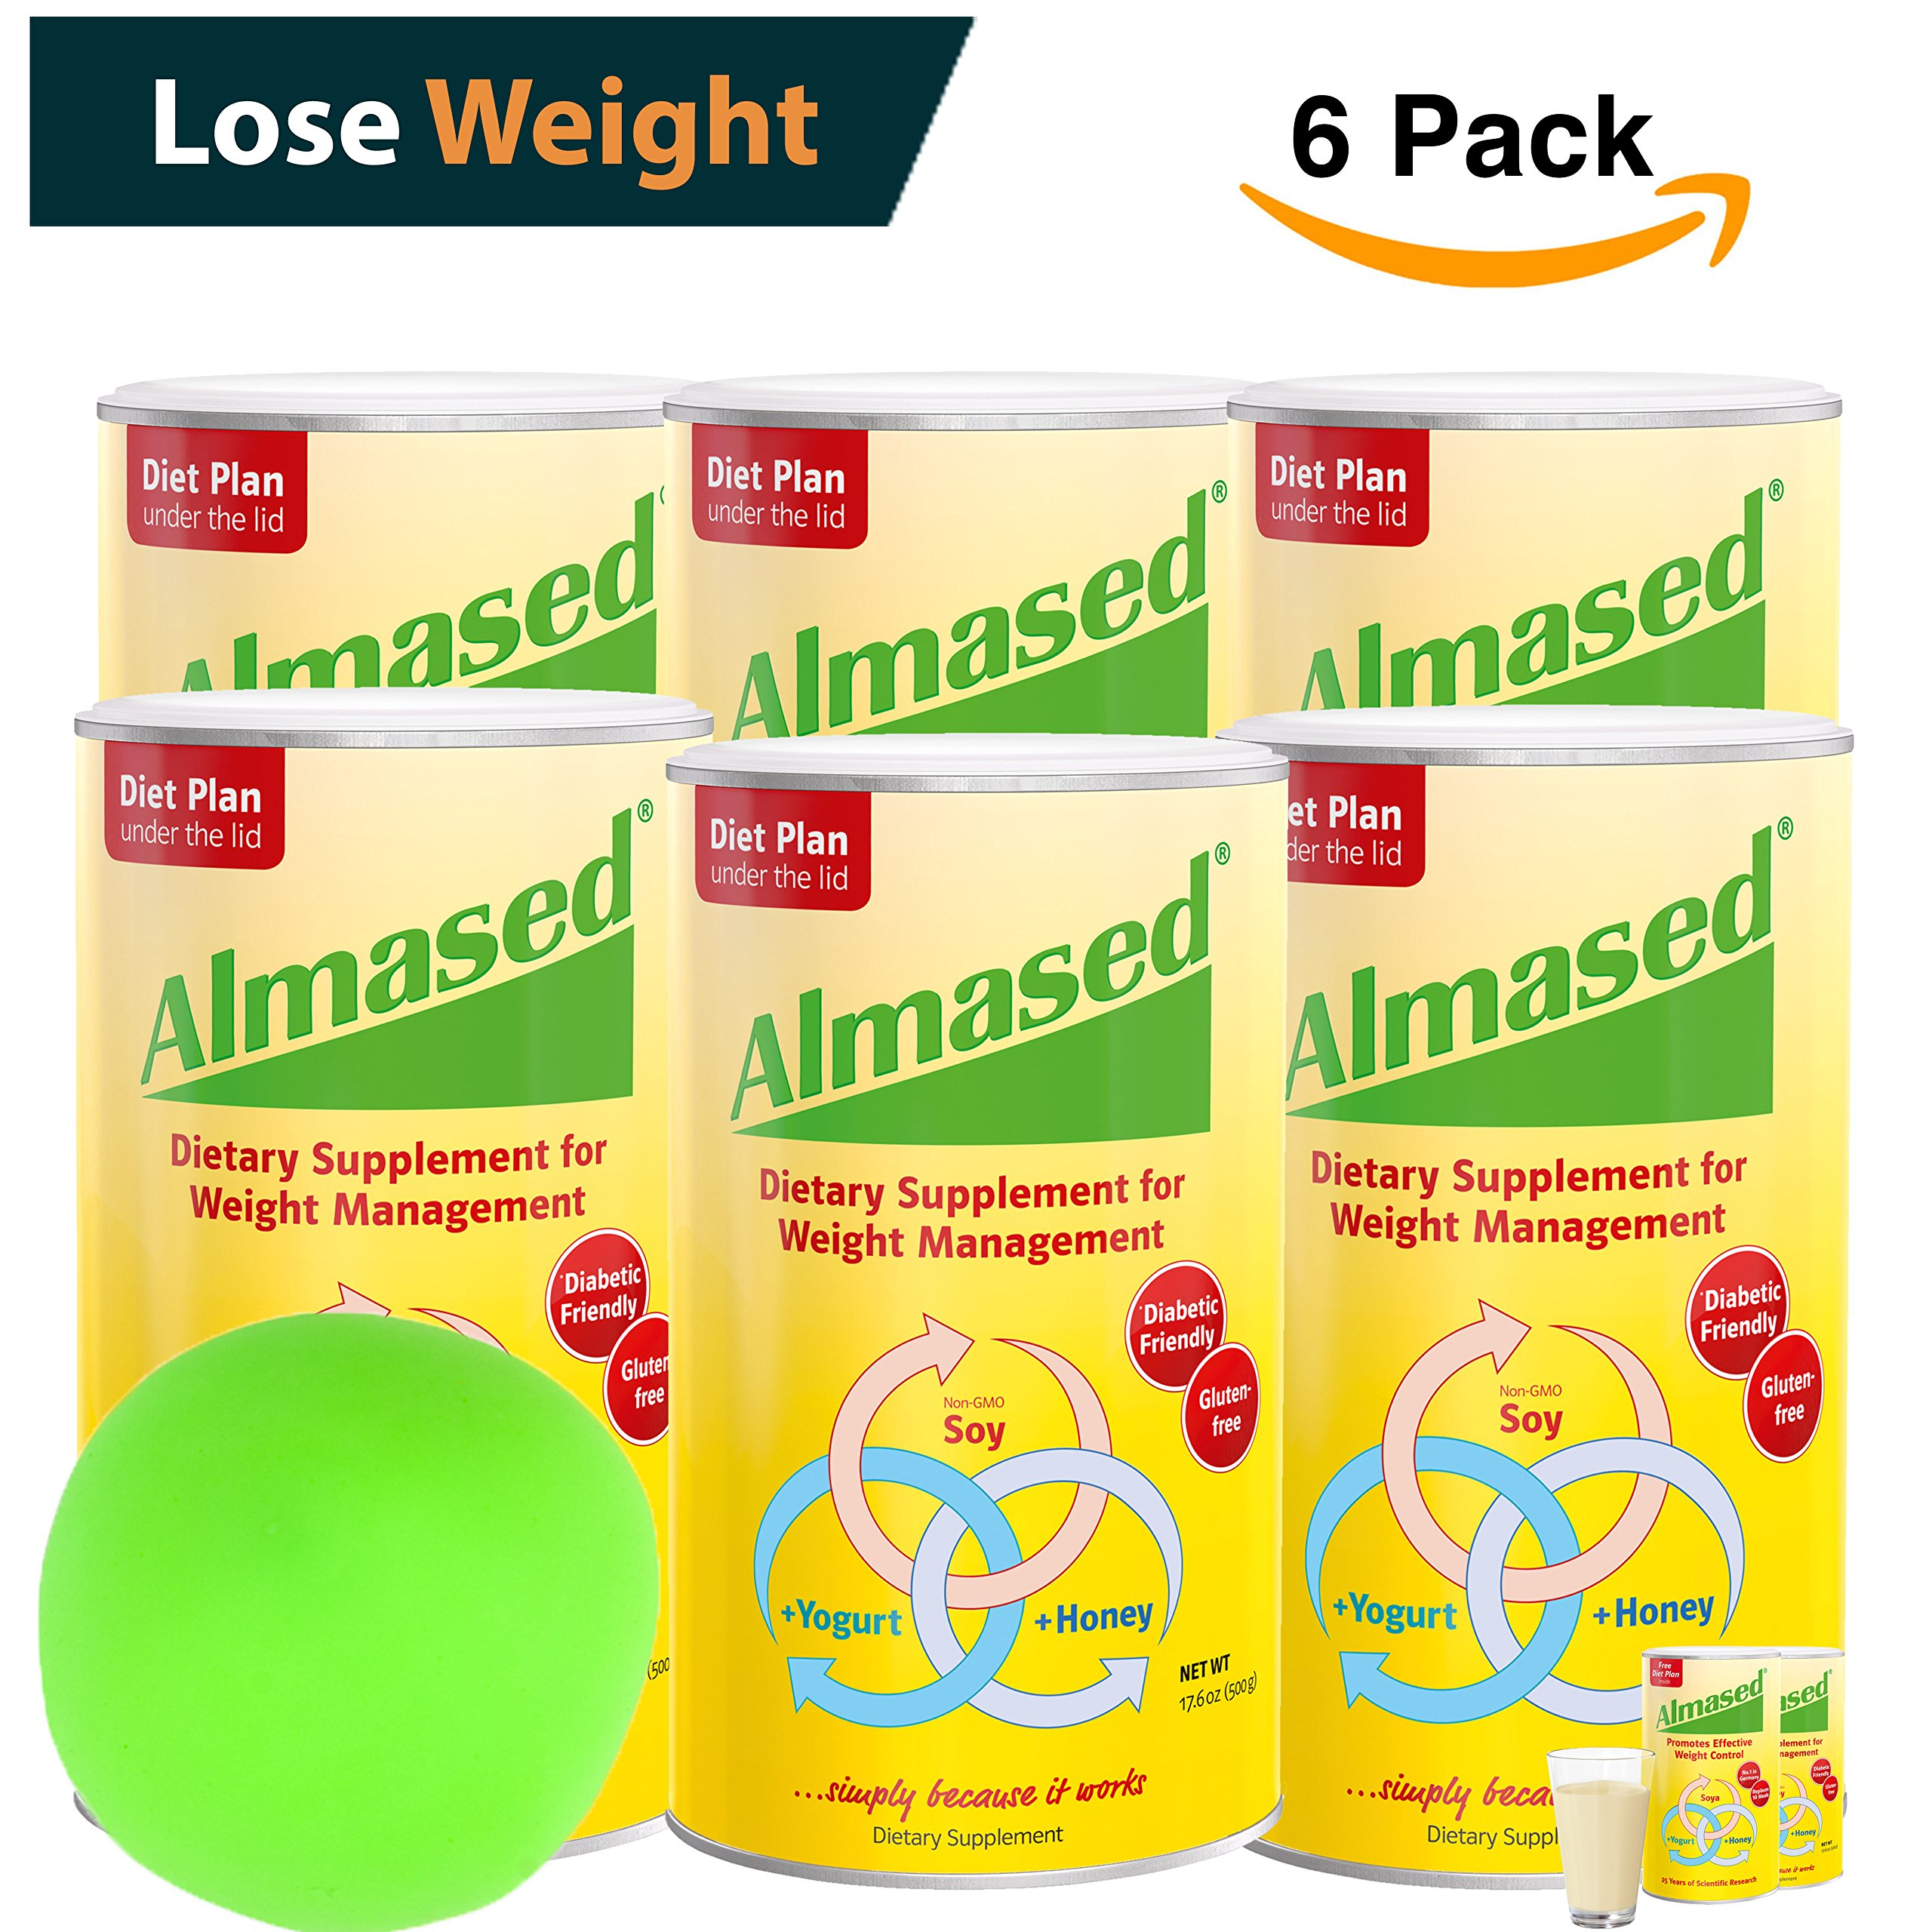 ALMASED® Diet Protein Powder - 6 Pack + Free Stress Balls. Weight Loss Protein Support - Optimal Maximum Health and Energy - Lose Weight and Keep the Weight Off - (17.6 ounce each)Almased®